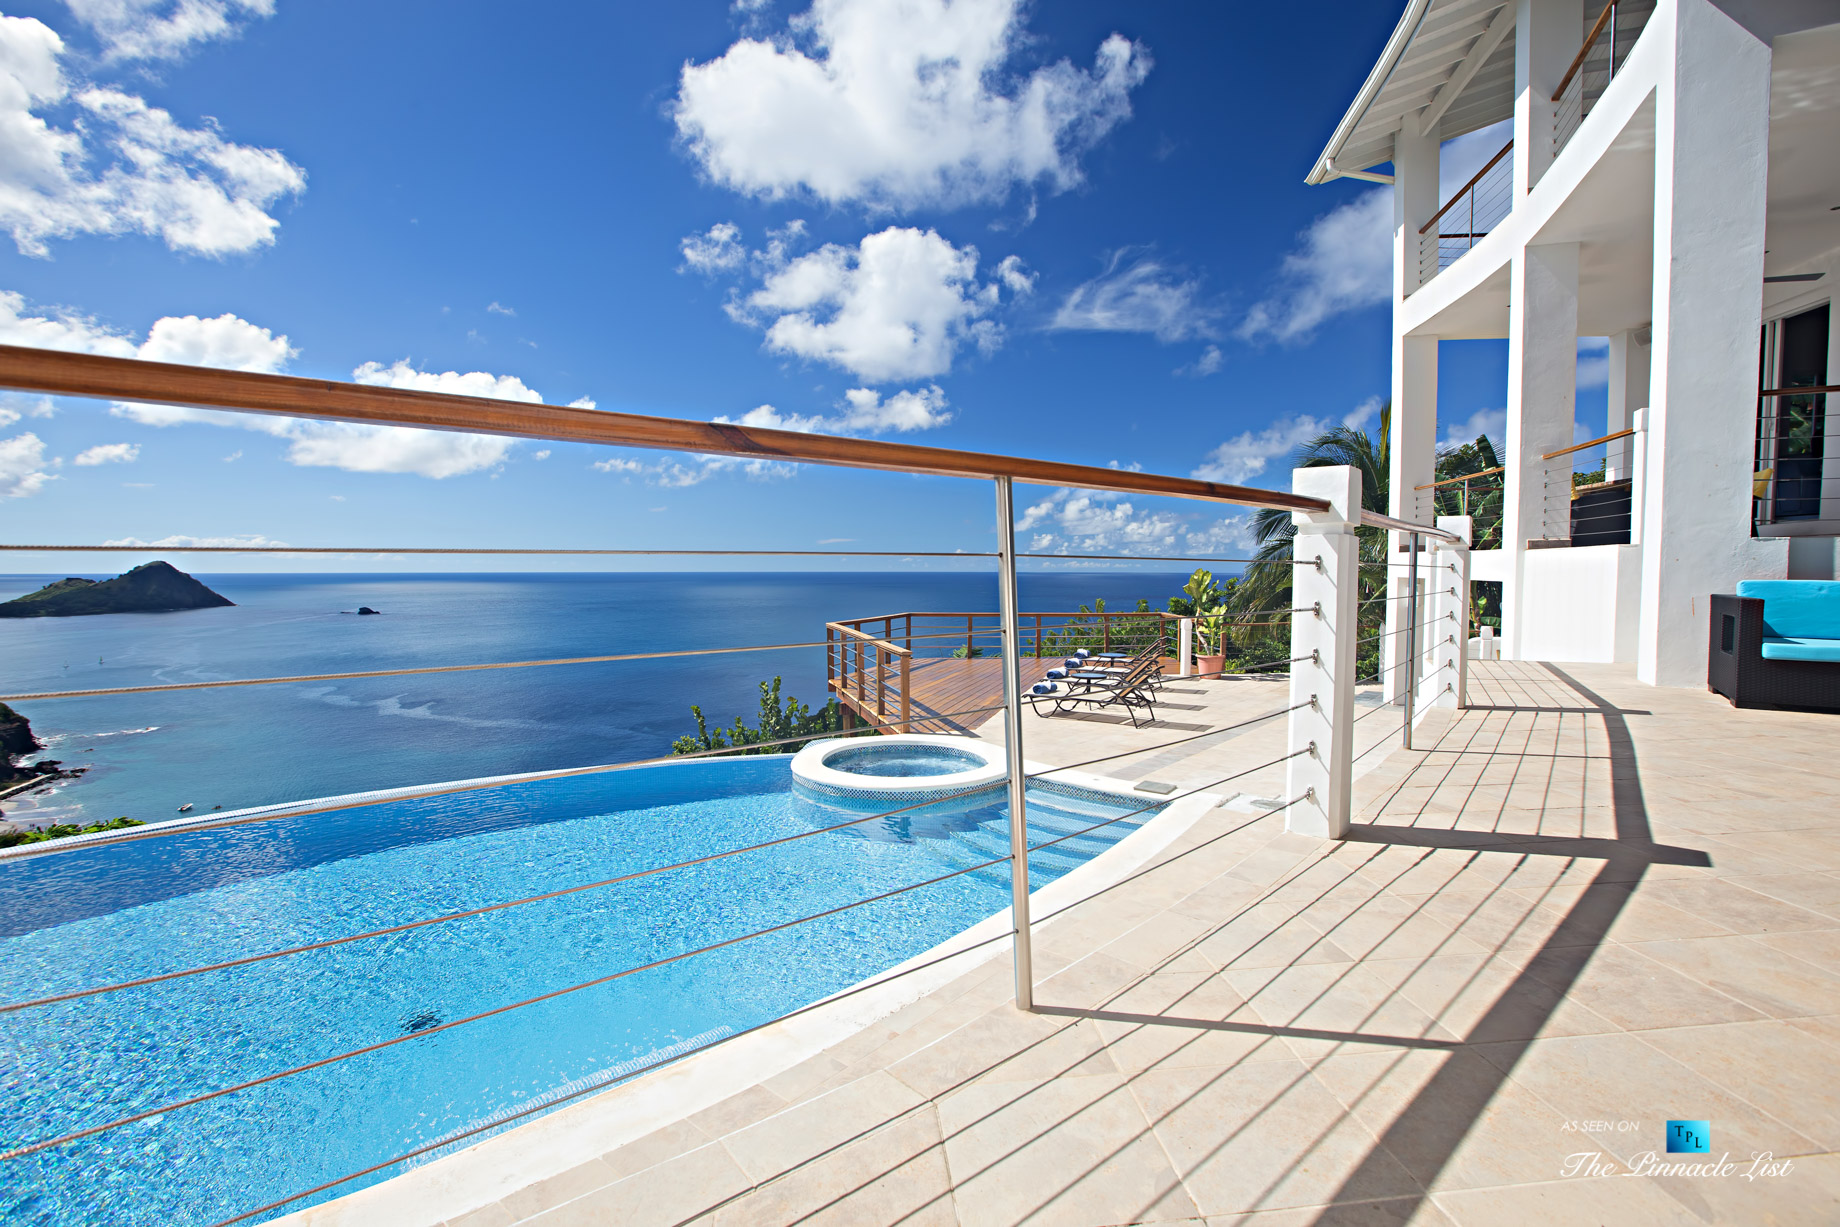 Akasha Luxury Caribbean Villa – Cap Estate, St. Lucia – Infinity Pool and Hot Tub View – Luxury Real Estate – Premier Oceanview Home